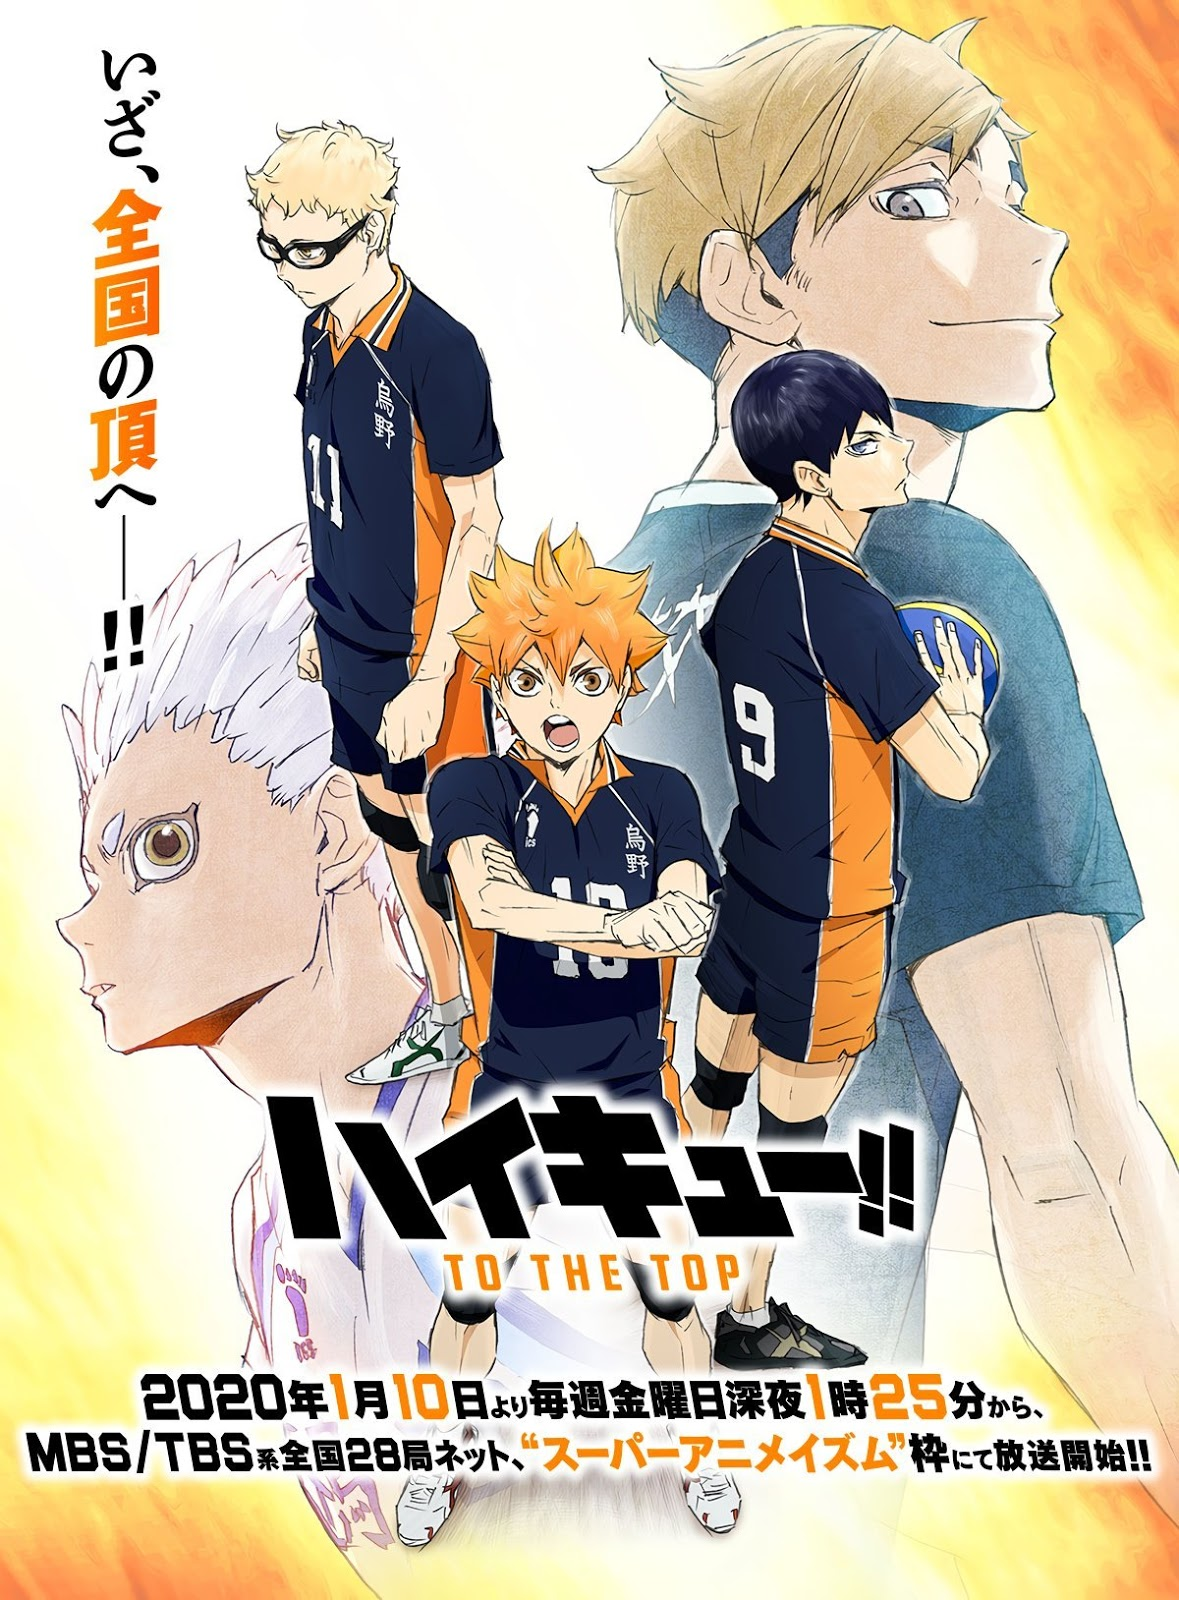 ハイキュー!! TO THE TOP , Haikyuu!! (2020) , 2020 , Anime , HD , 720p , Comedy, Sports, Drama, School, Shounen